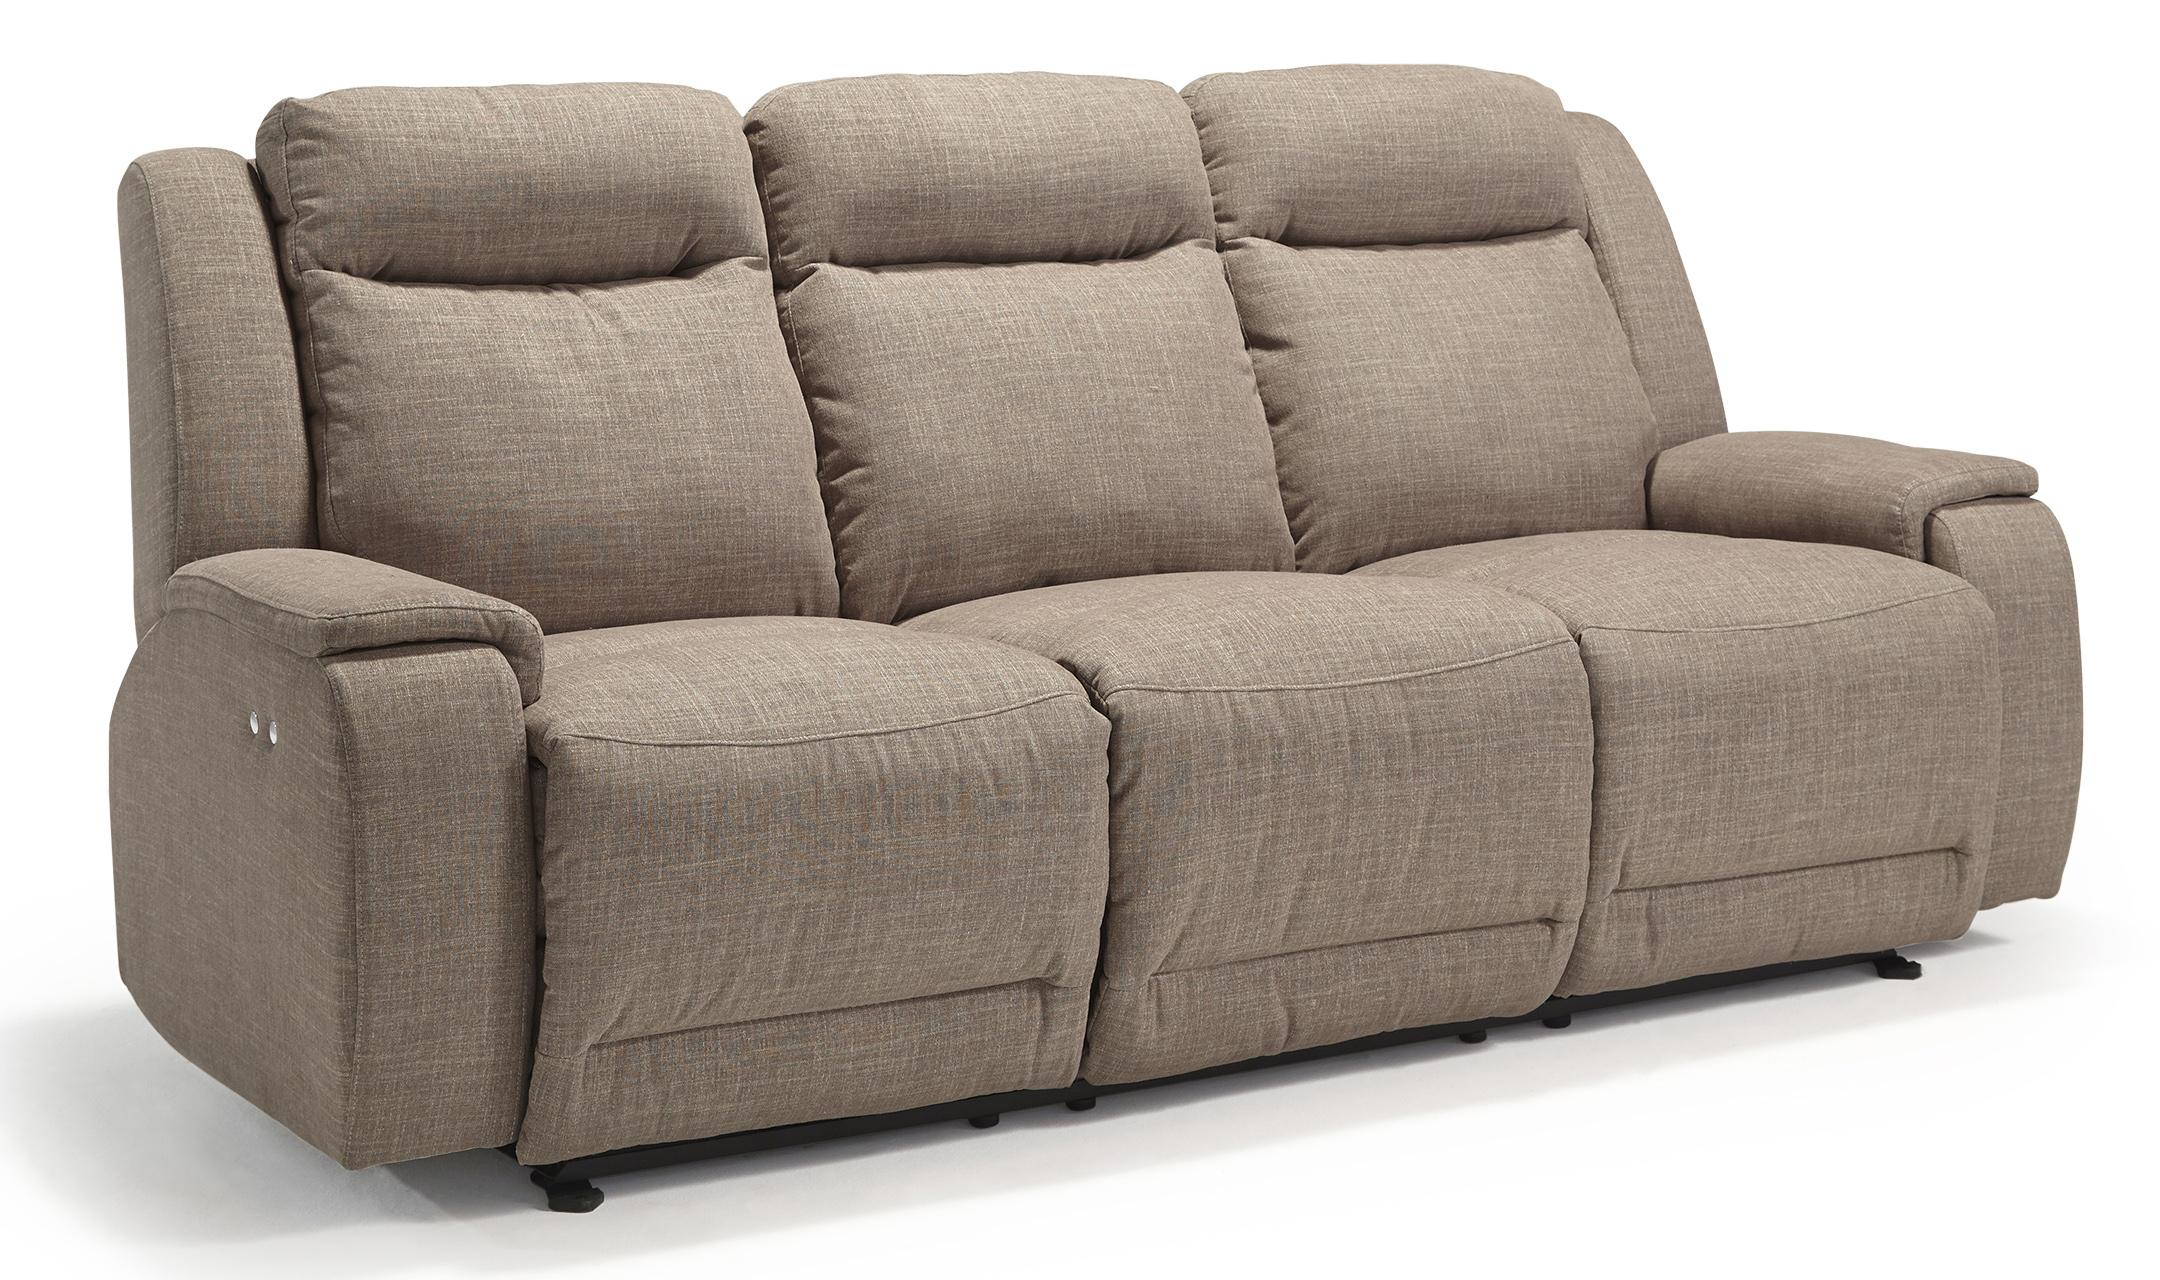 Ordinaire Casual Power Reclining Sofa With Memory Foam Cushions